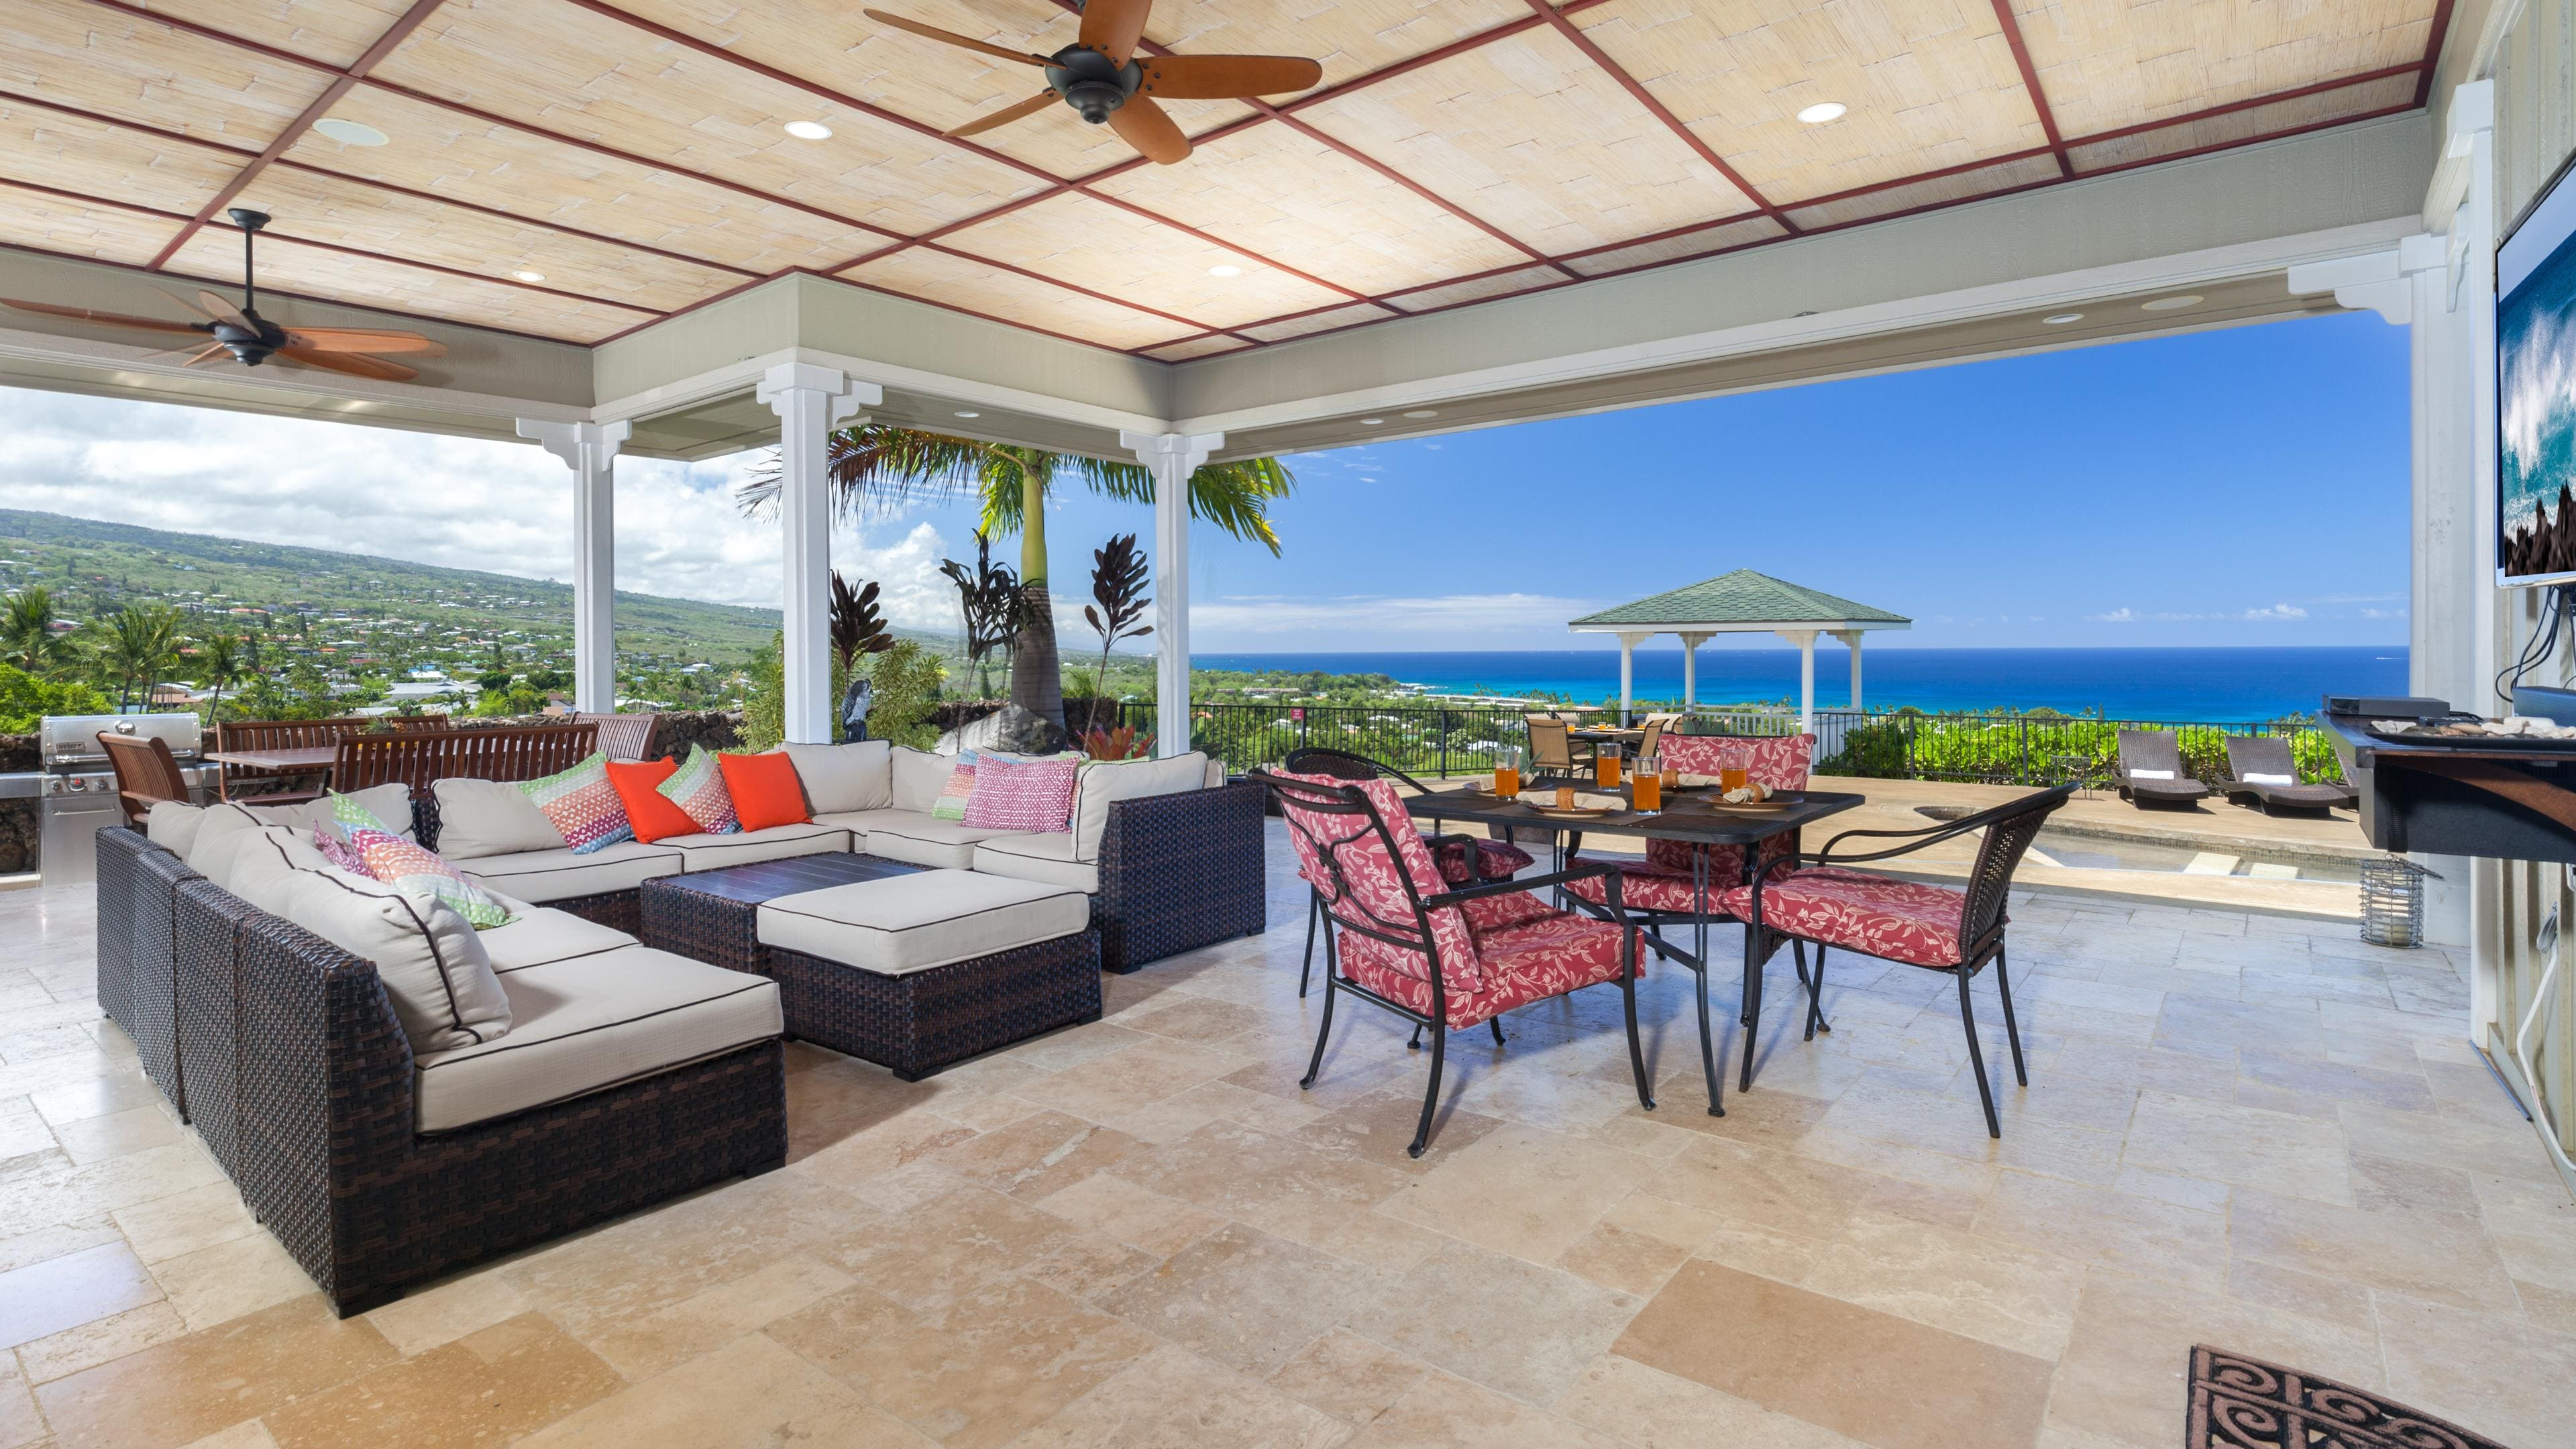 Large Covered Lanai with stunning ocean view and multiple outdoor tables for dining or games night